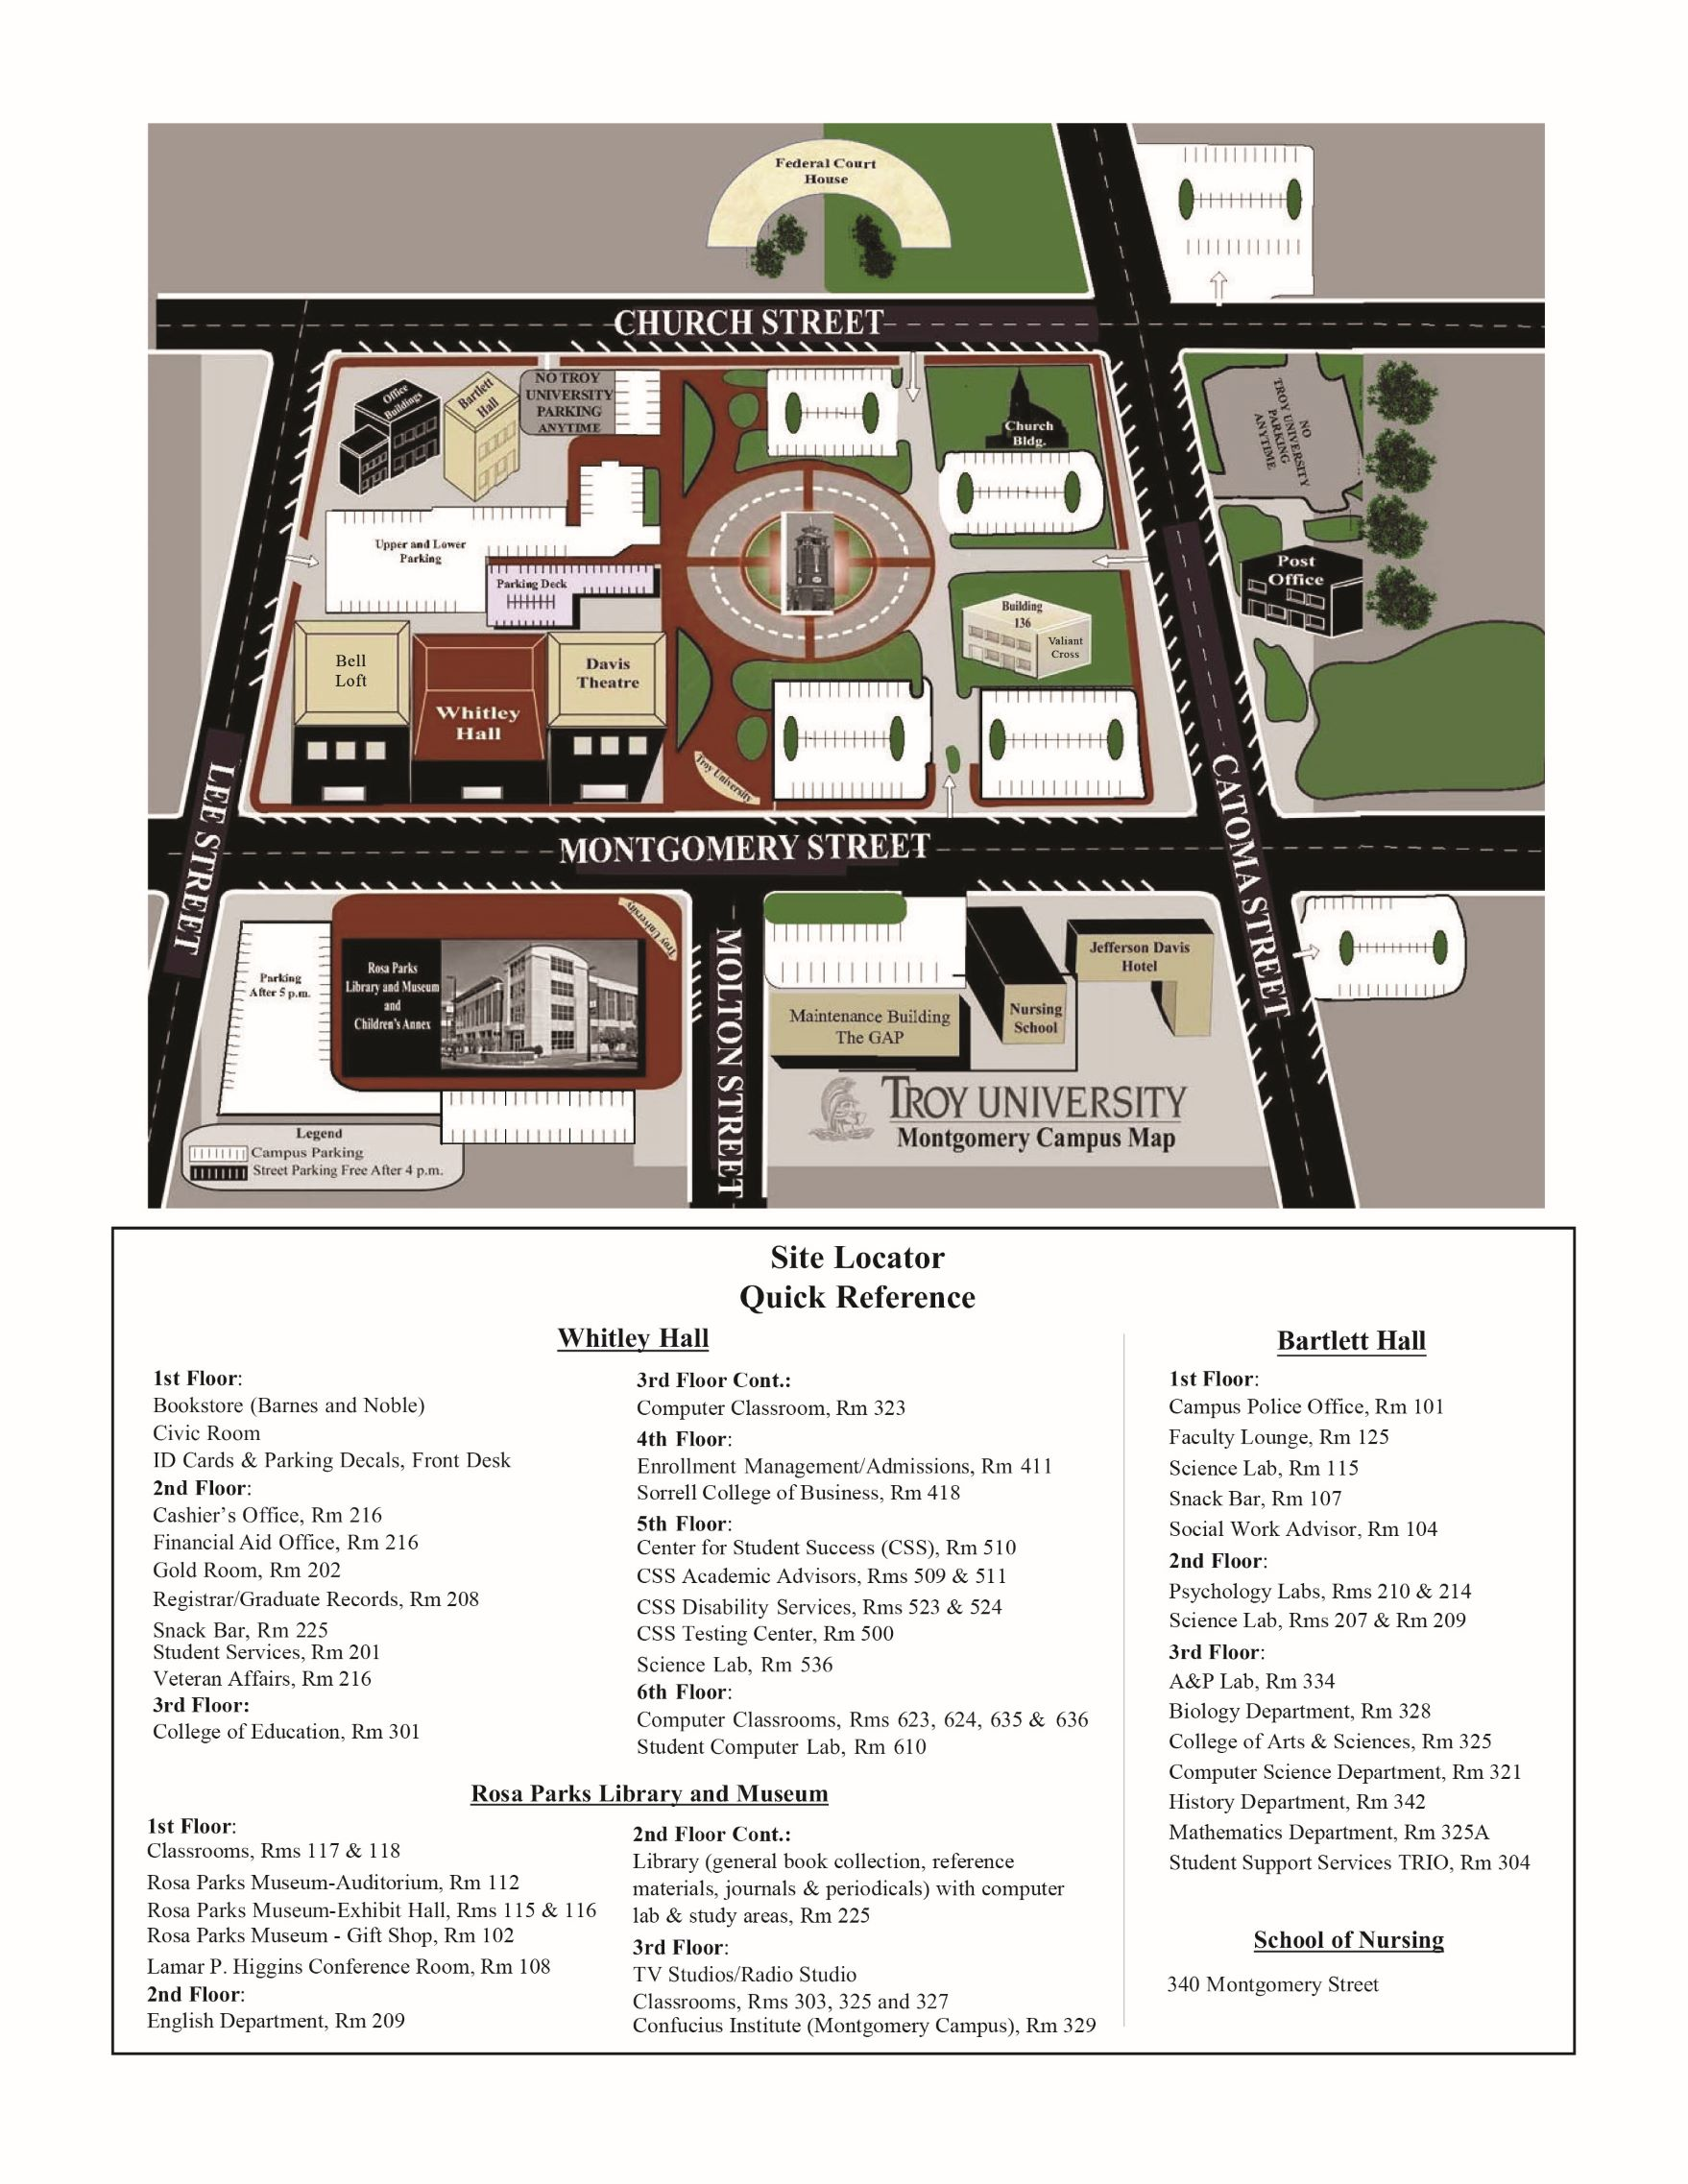 Montgomery Campus Map